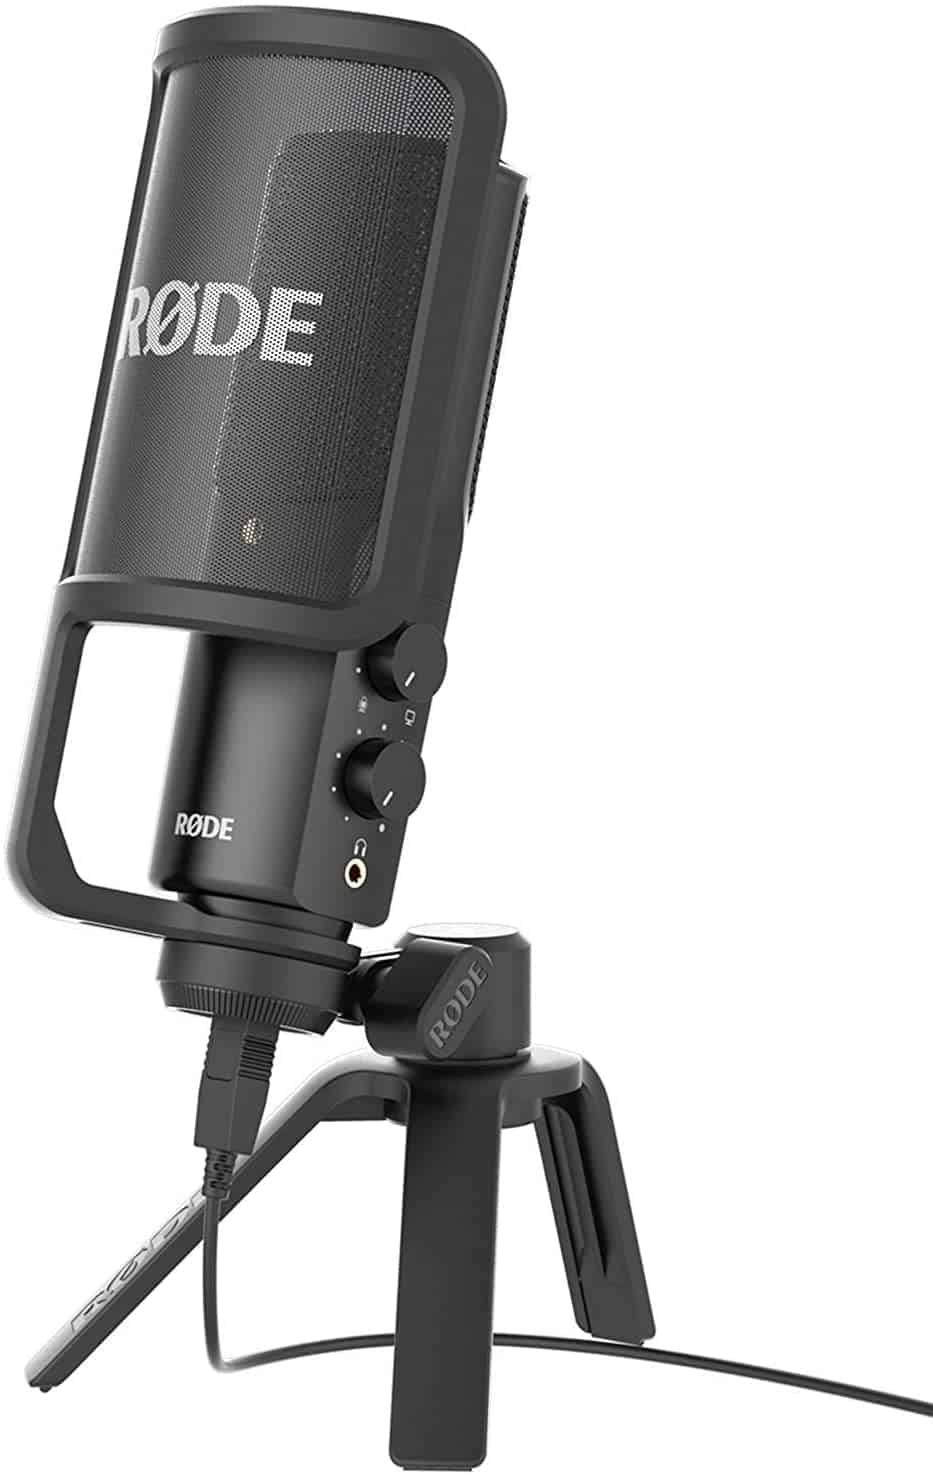 Overall best USB condenser microphone: Rode Nt-USB